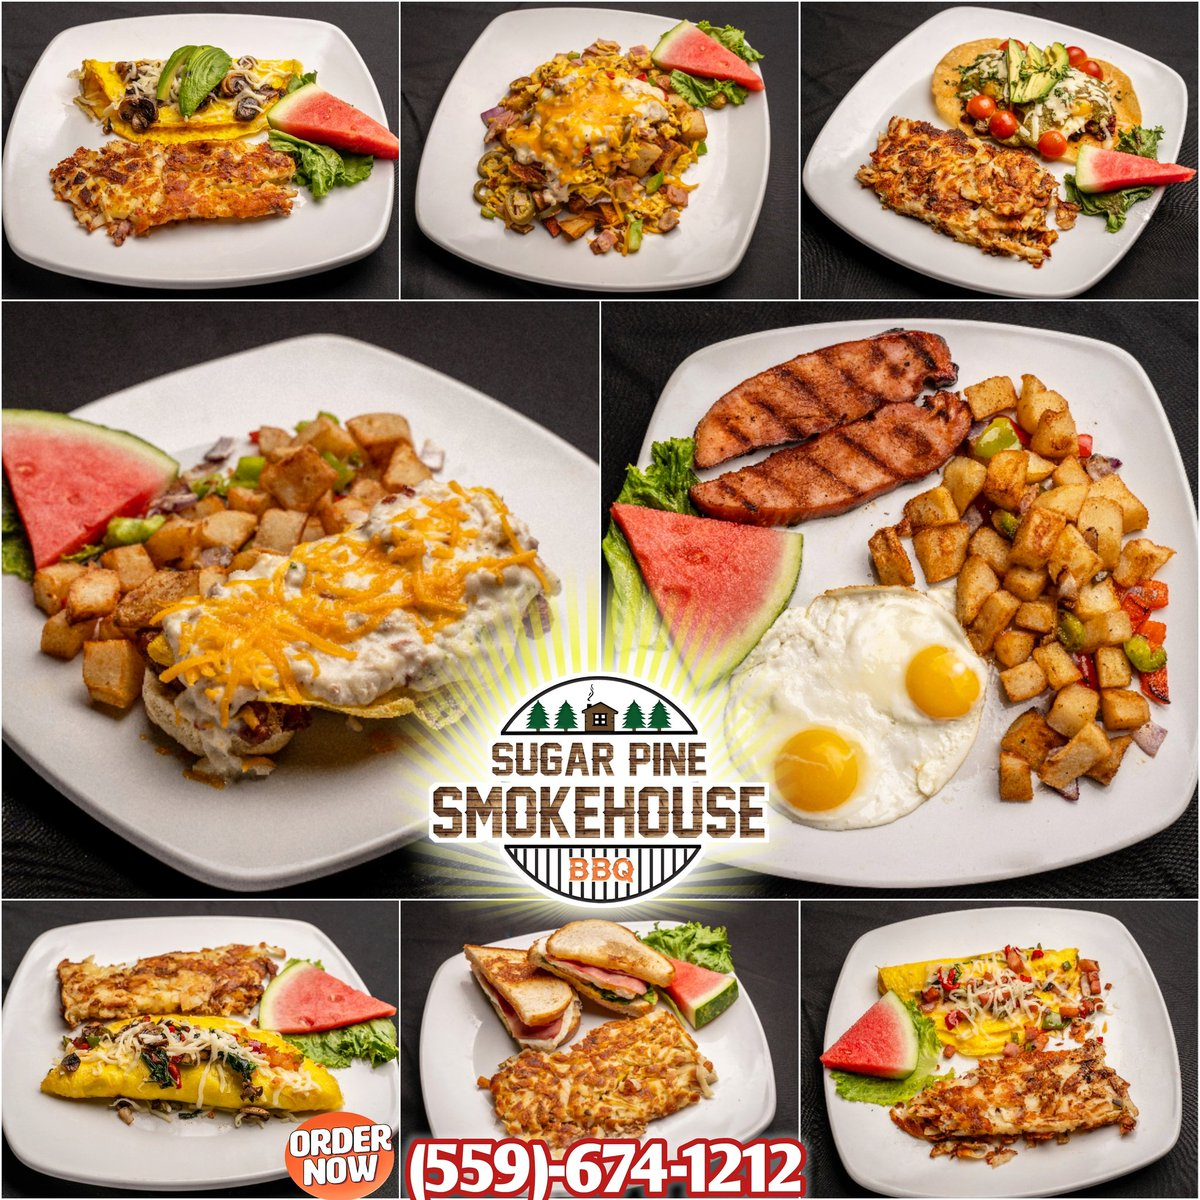 #Breakfast!  Open everyday at 7am! Dine-in or call to-go! (559)674-1212  #madera #brunchpic.twitter.com/AEFCh5gRwR